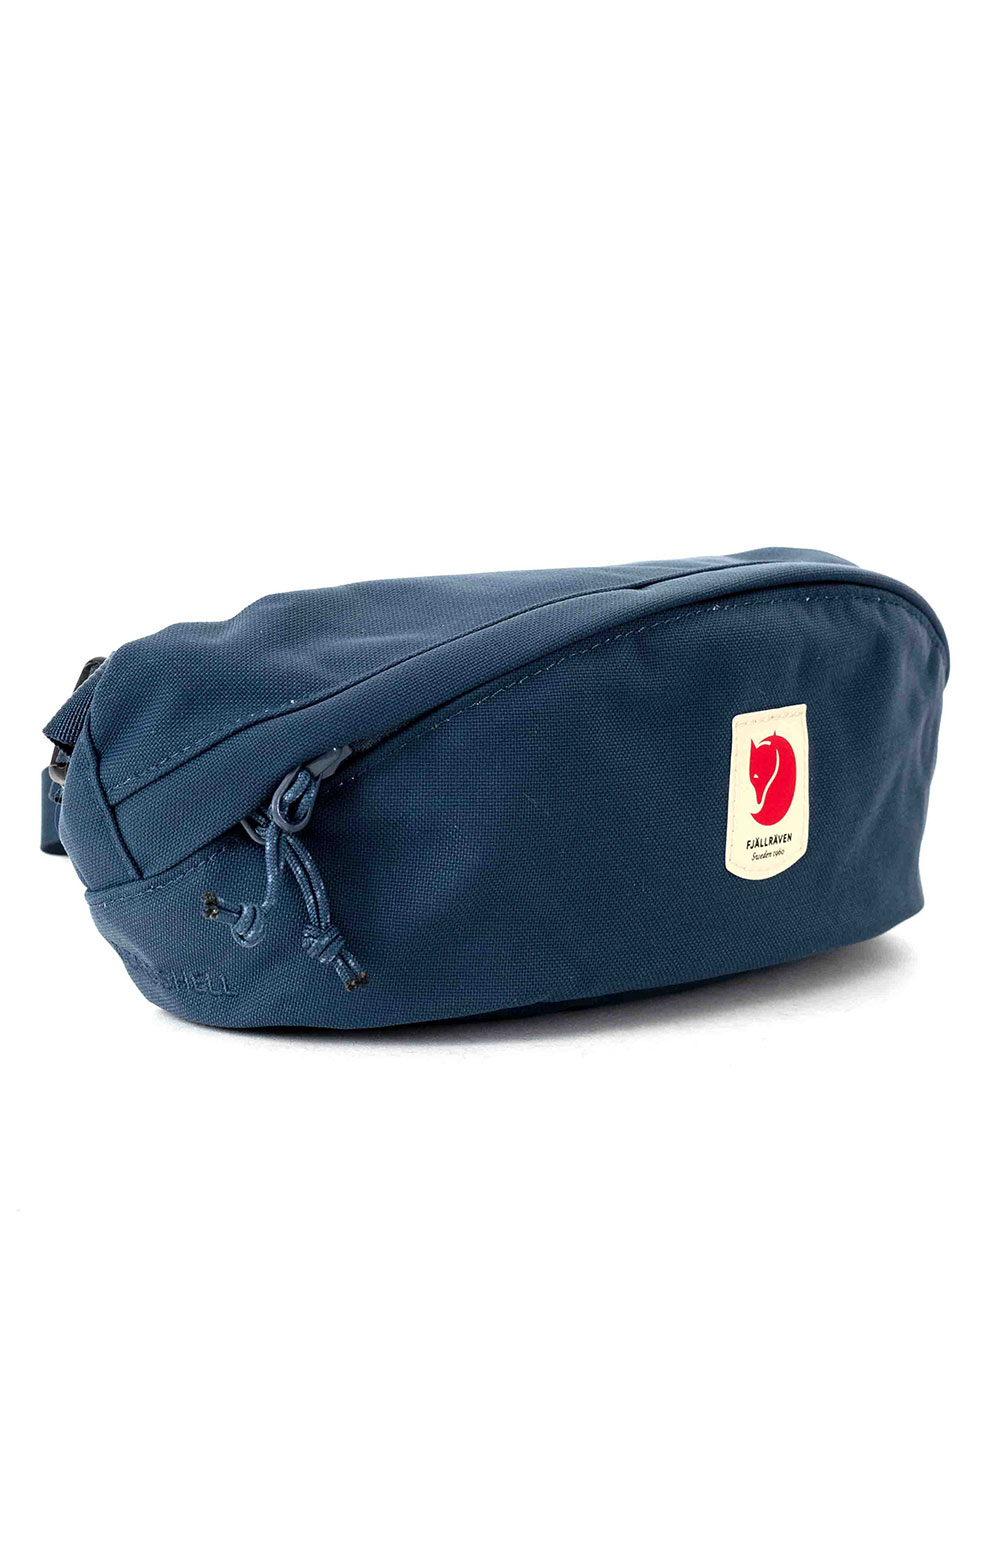 Ulvo Hip Pack Large - Mountain Blue 2